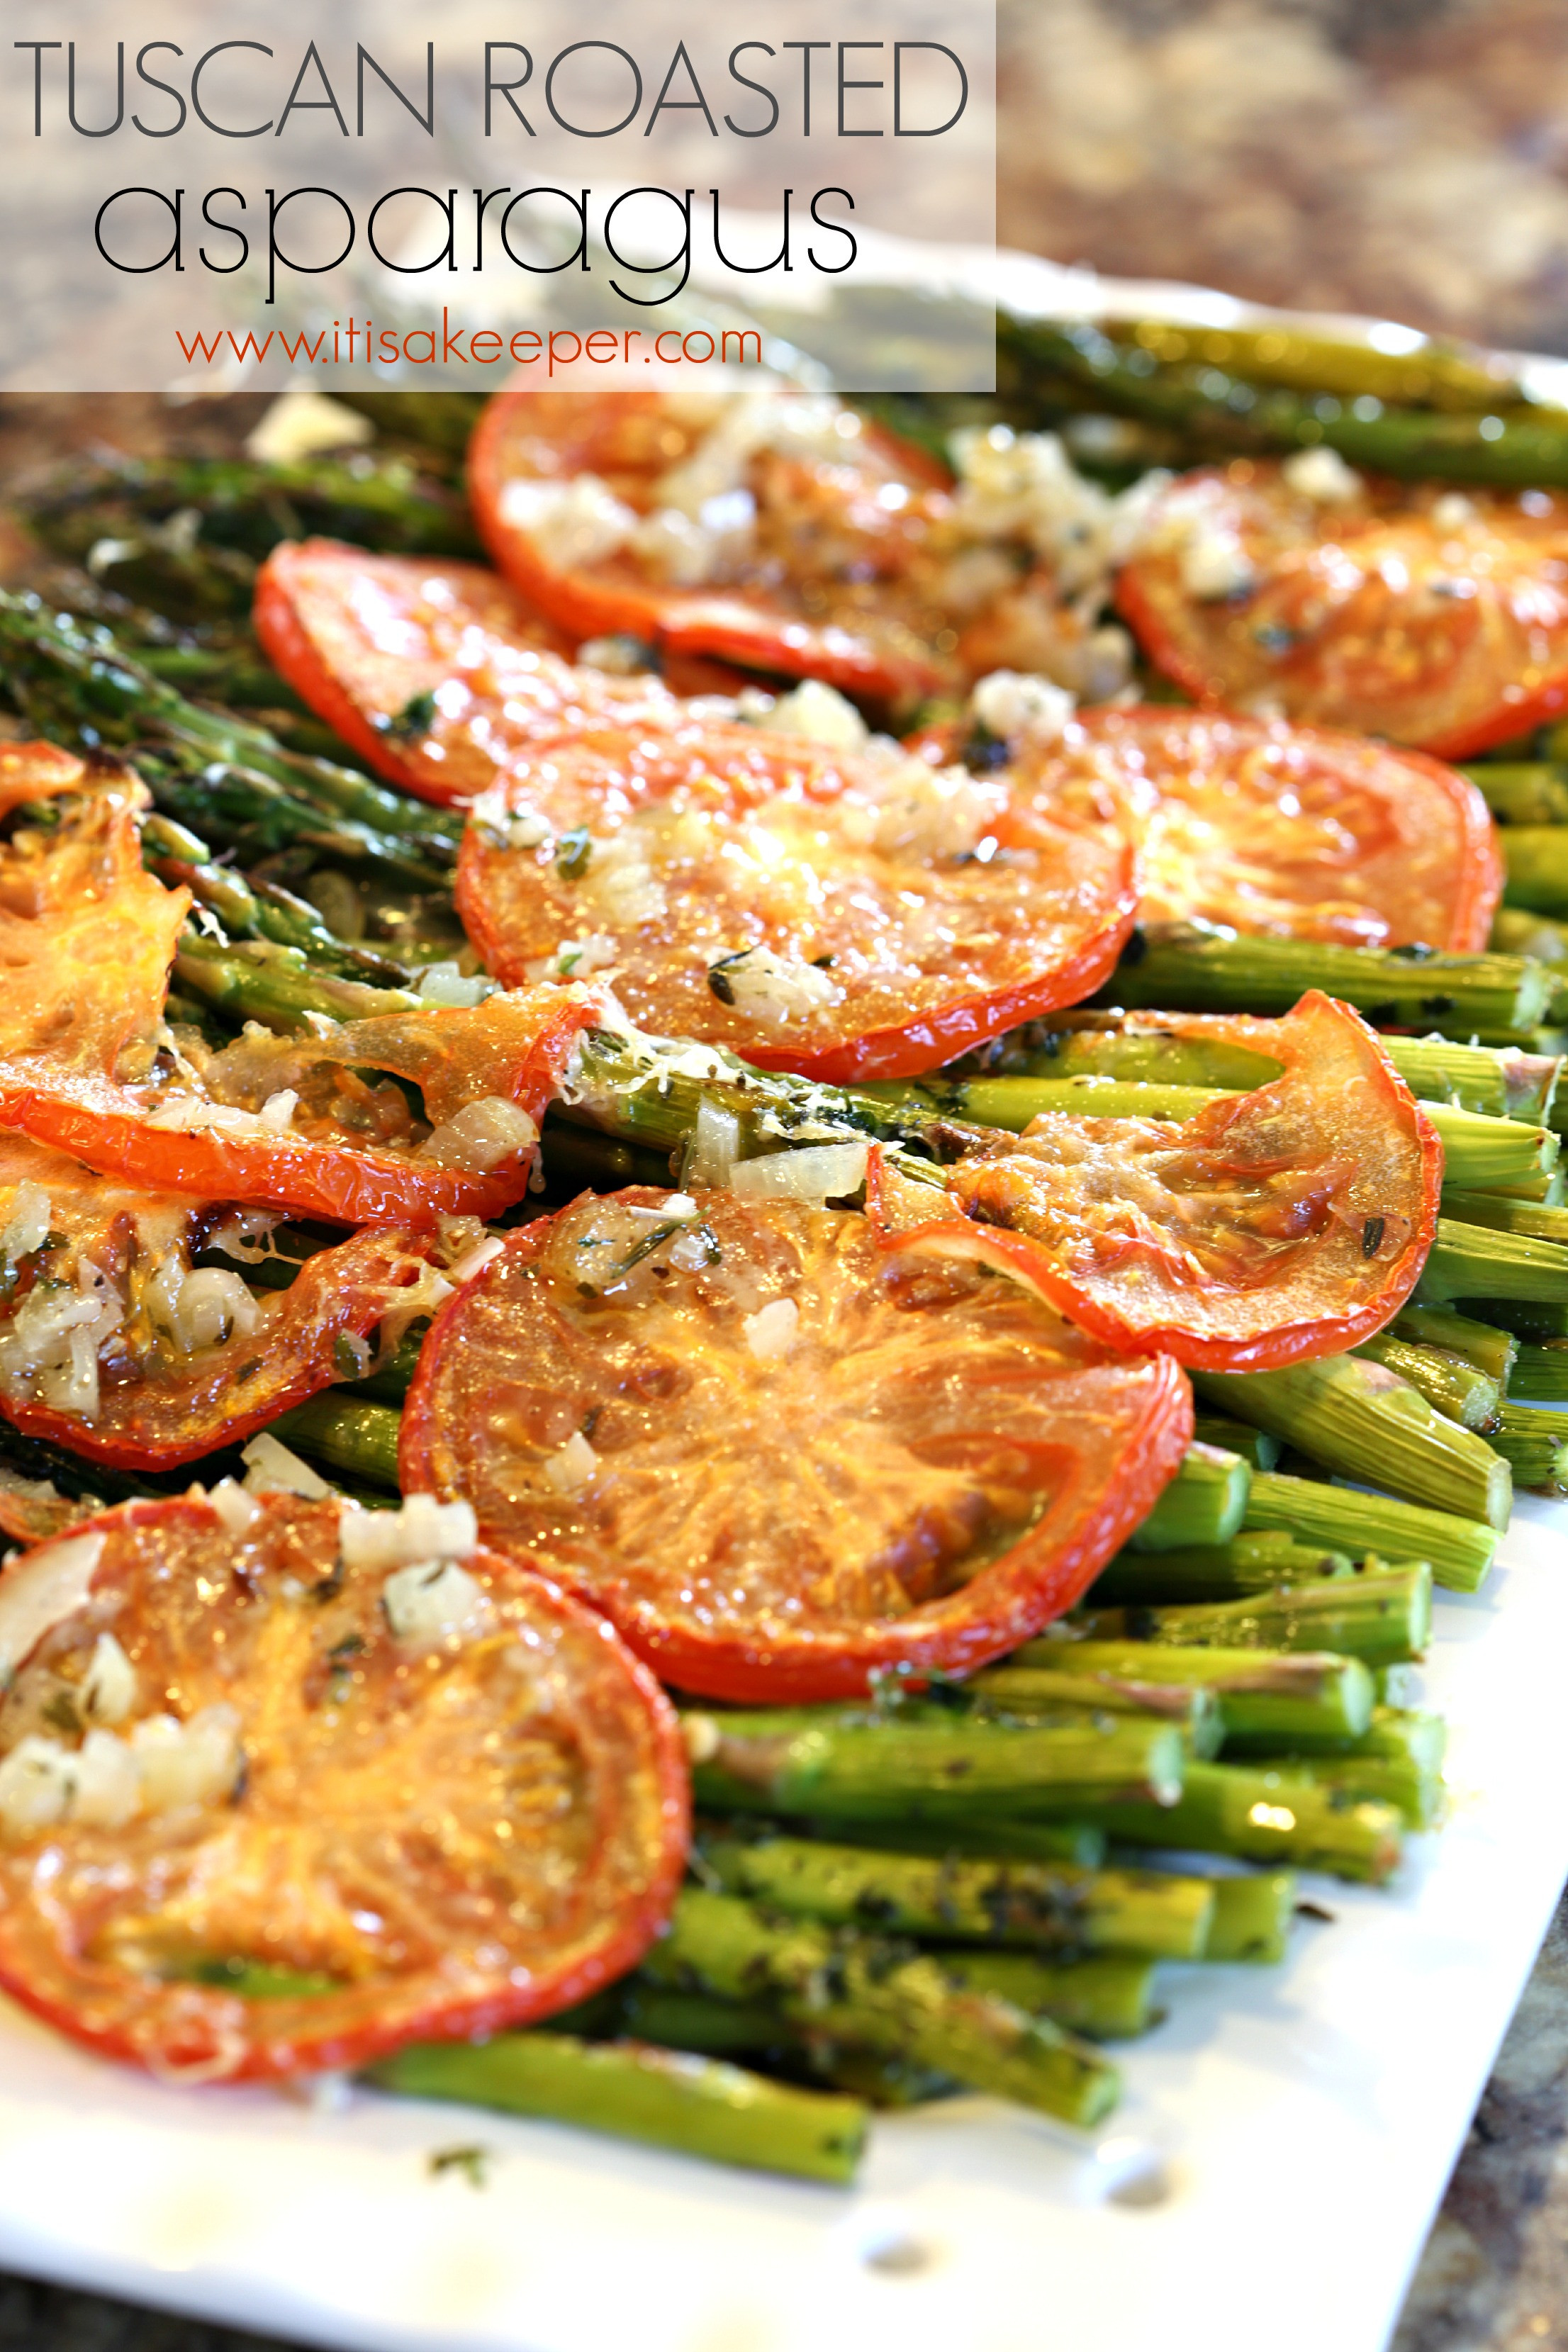 Healthy Asparagus Recipes  Healthy Easy Dinner Recipes Tuscan Roasted Asparagus